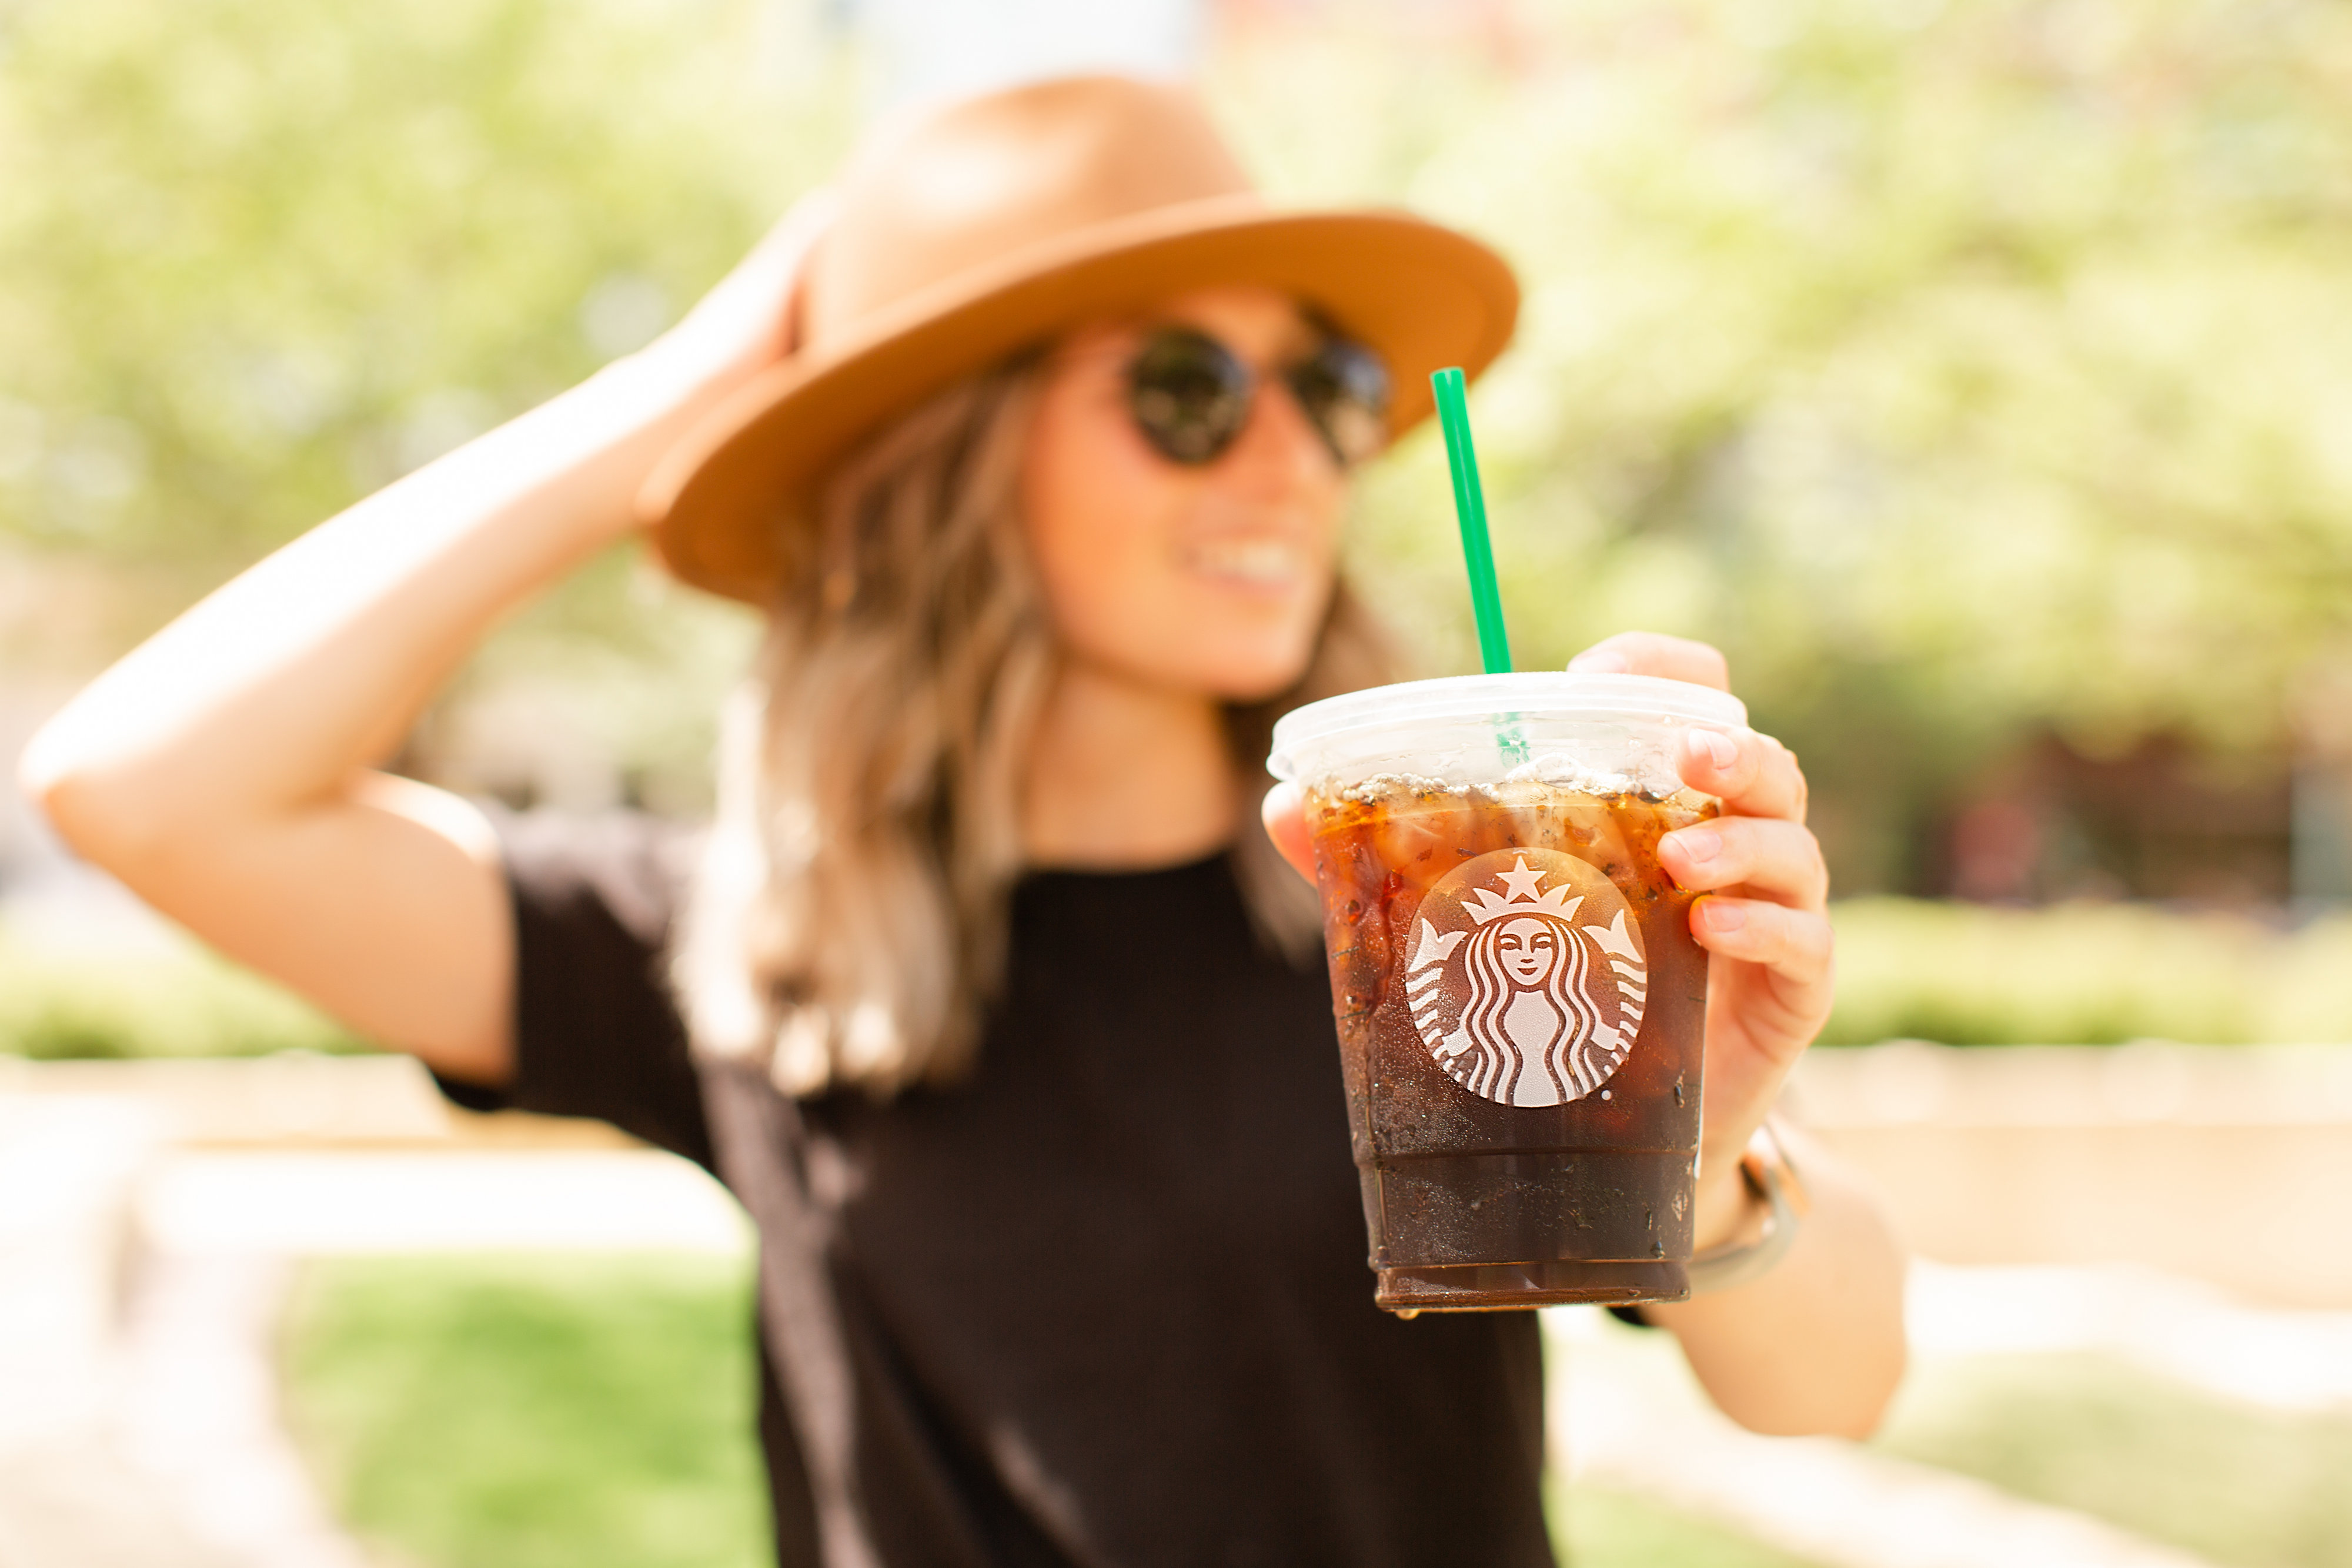 Starbucks brand photograph with young woman holding iced coffee in hand